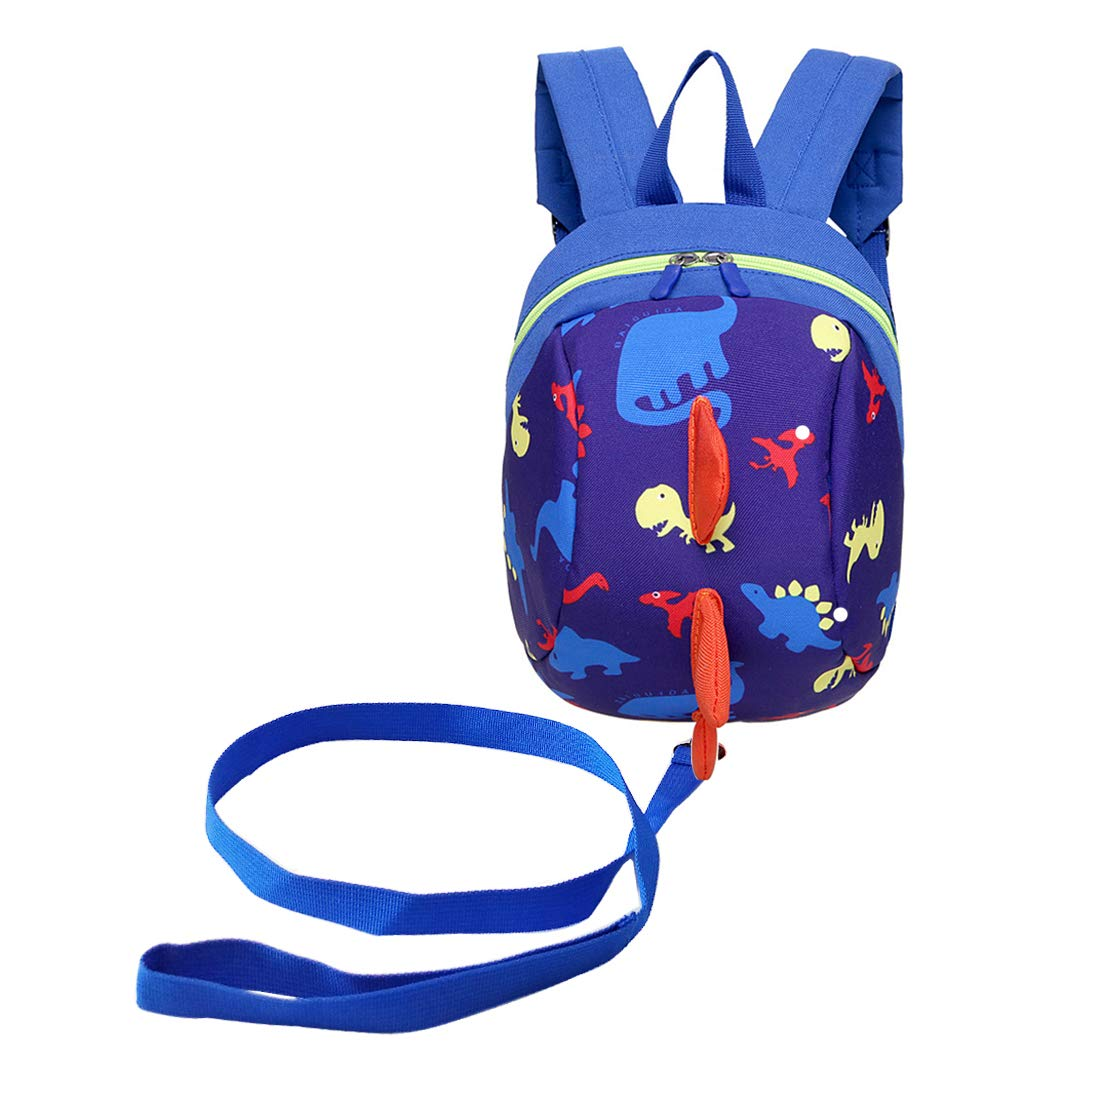 Samloong Kids Dinosaur Backpack with Safety Harness Leash Blue